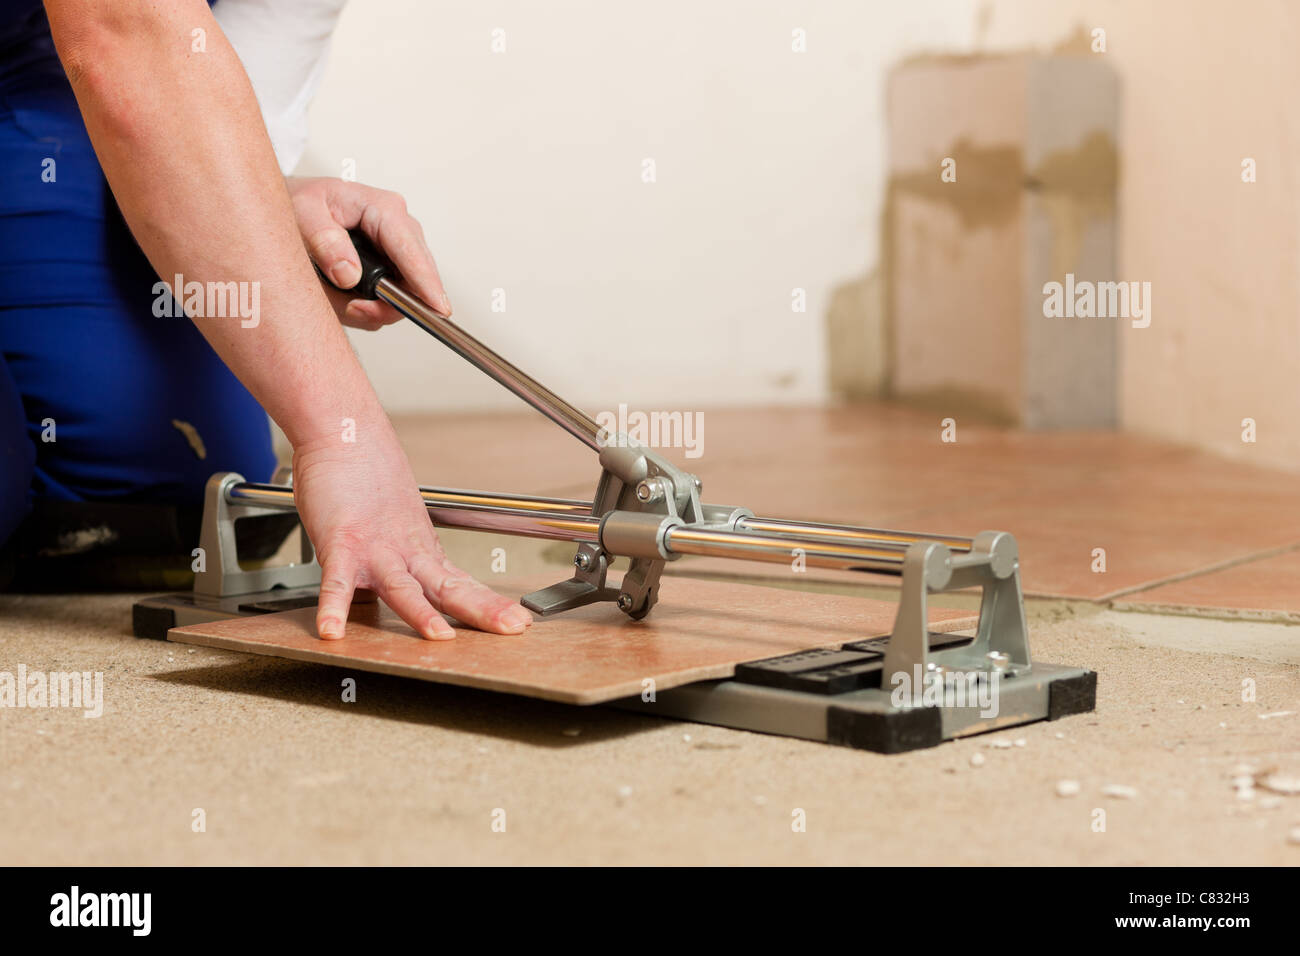 Construction worker is cutting tiles at home stock photo 39405887 construction worker is cutting tiles at home dailygadgetfo Images